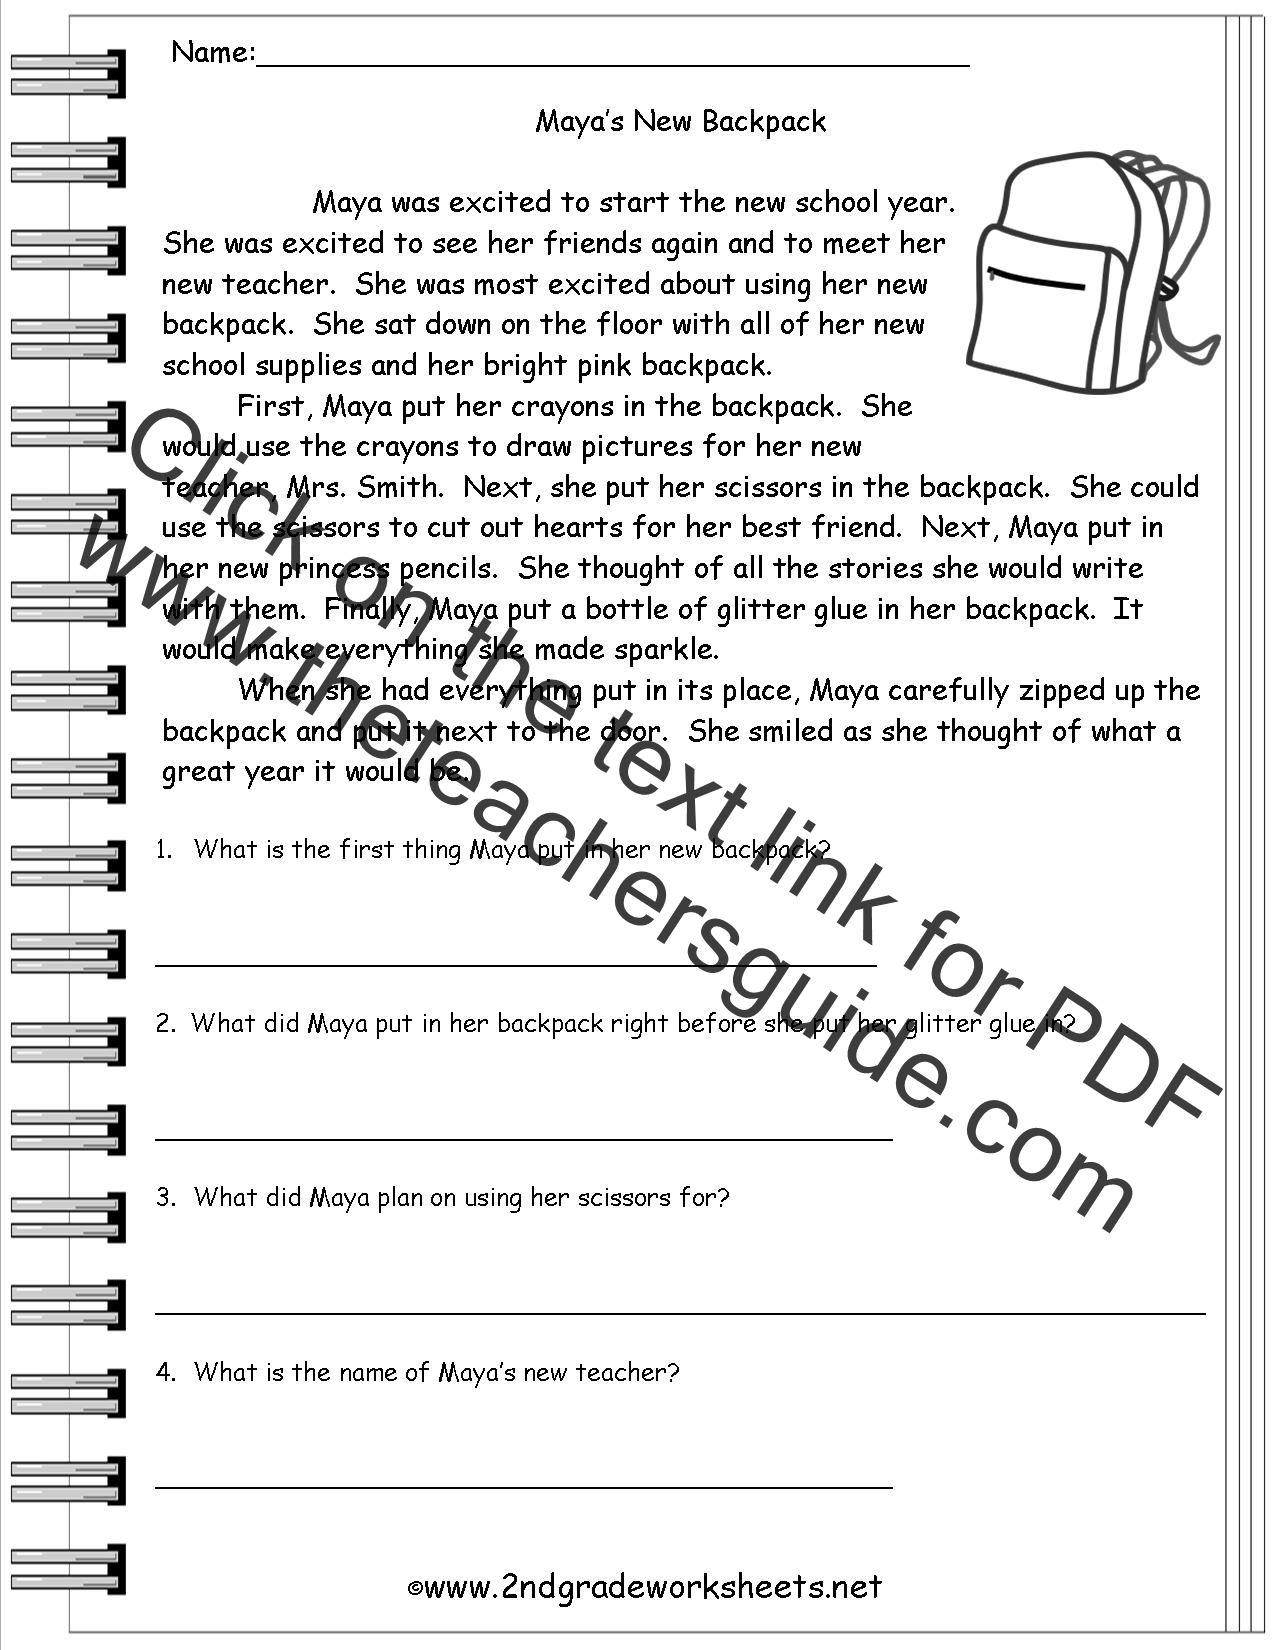 Reading With Questions Worksheets : Reading worksheeets